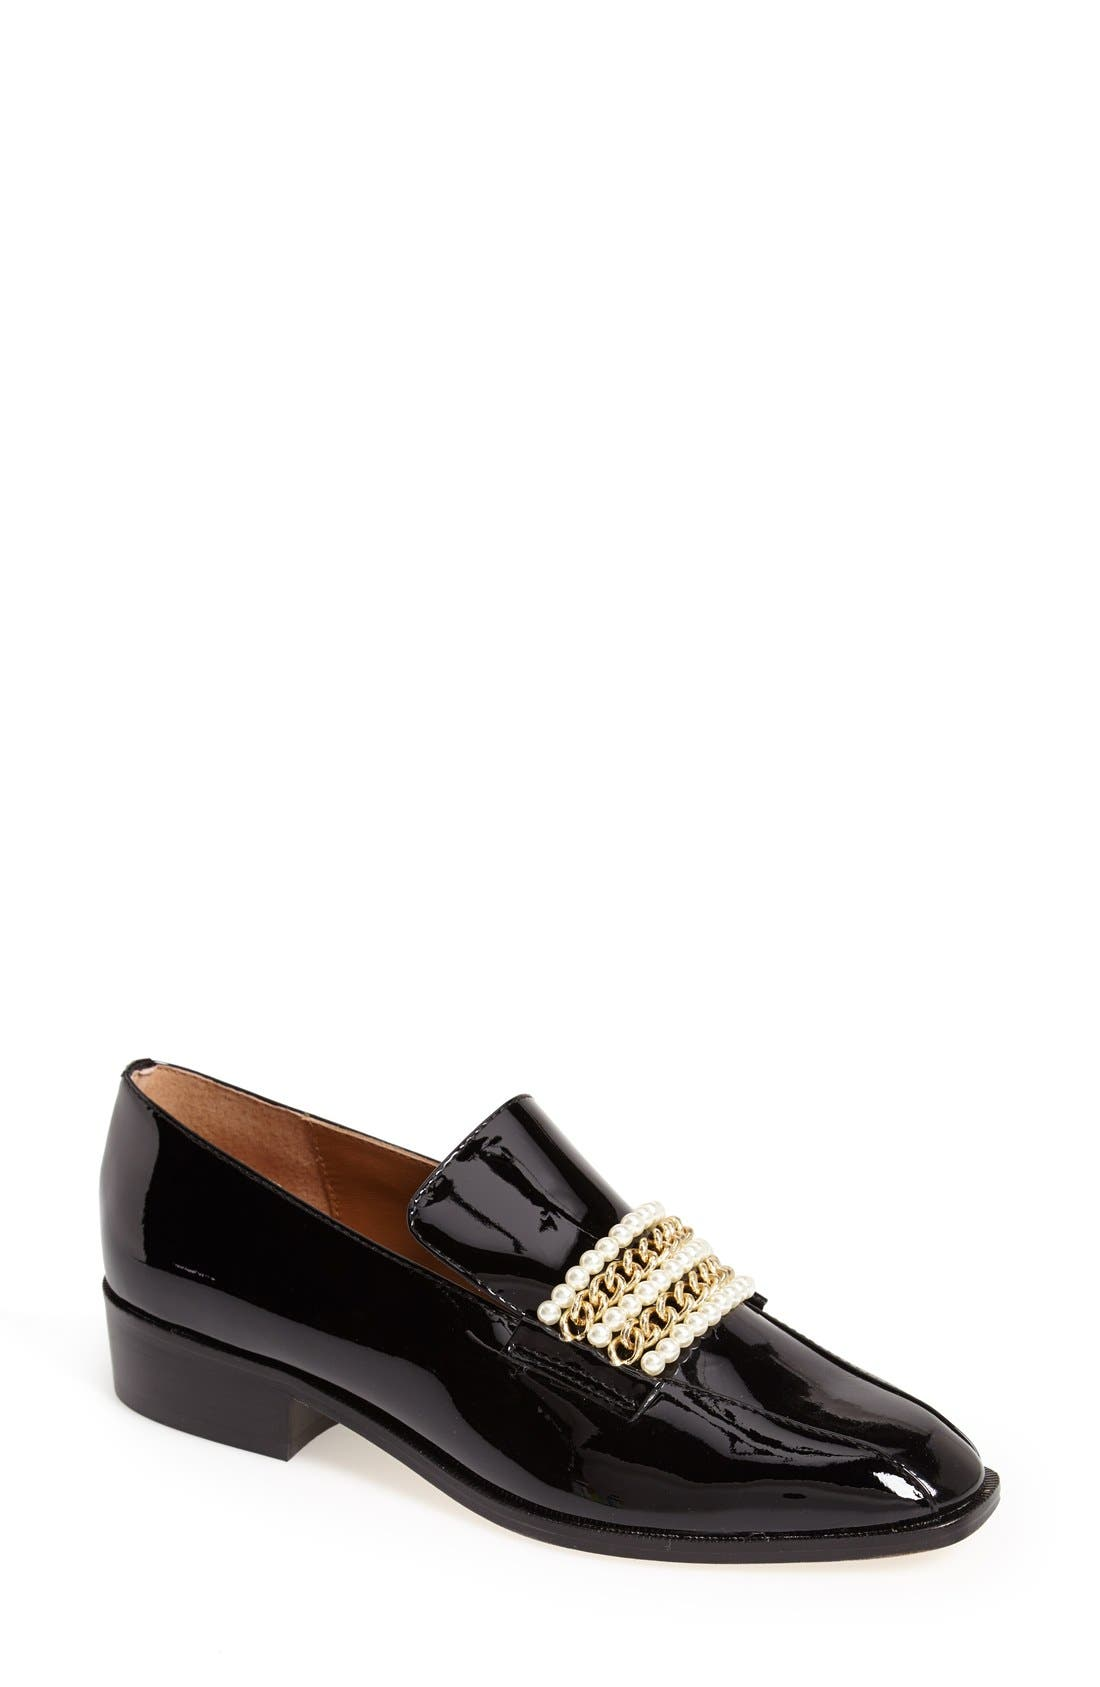 Main Image - Bettye Muller 'Pearl' Patent Leather Loafer (Women)